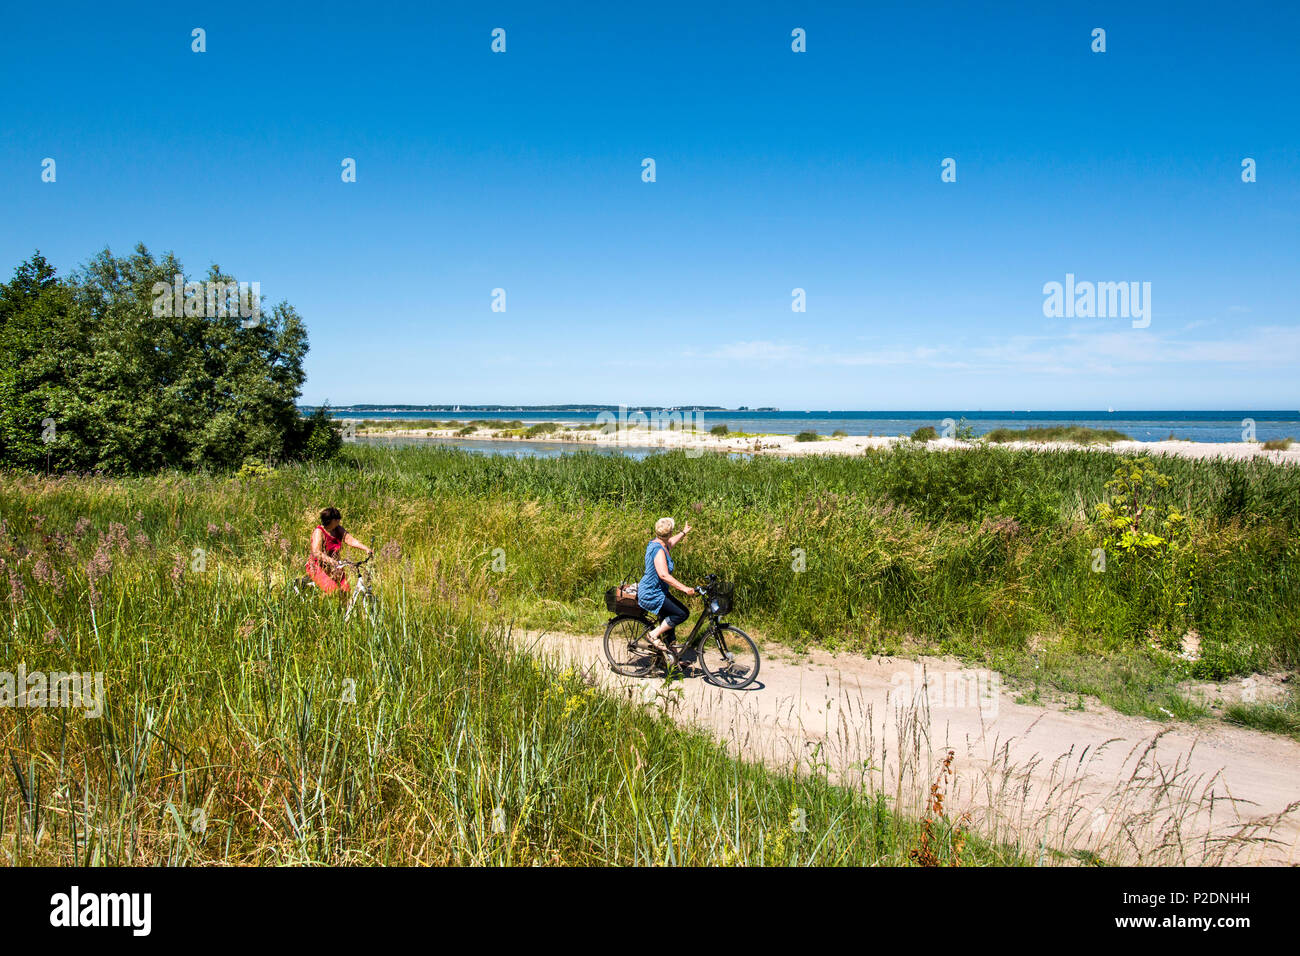 Cycle path along Kiel fjord, Baltic Coast, Schleswig-Holstein, Germany - Stock Image